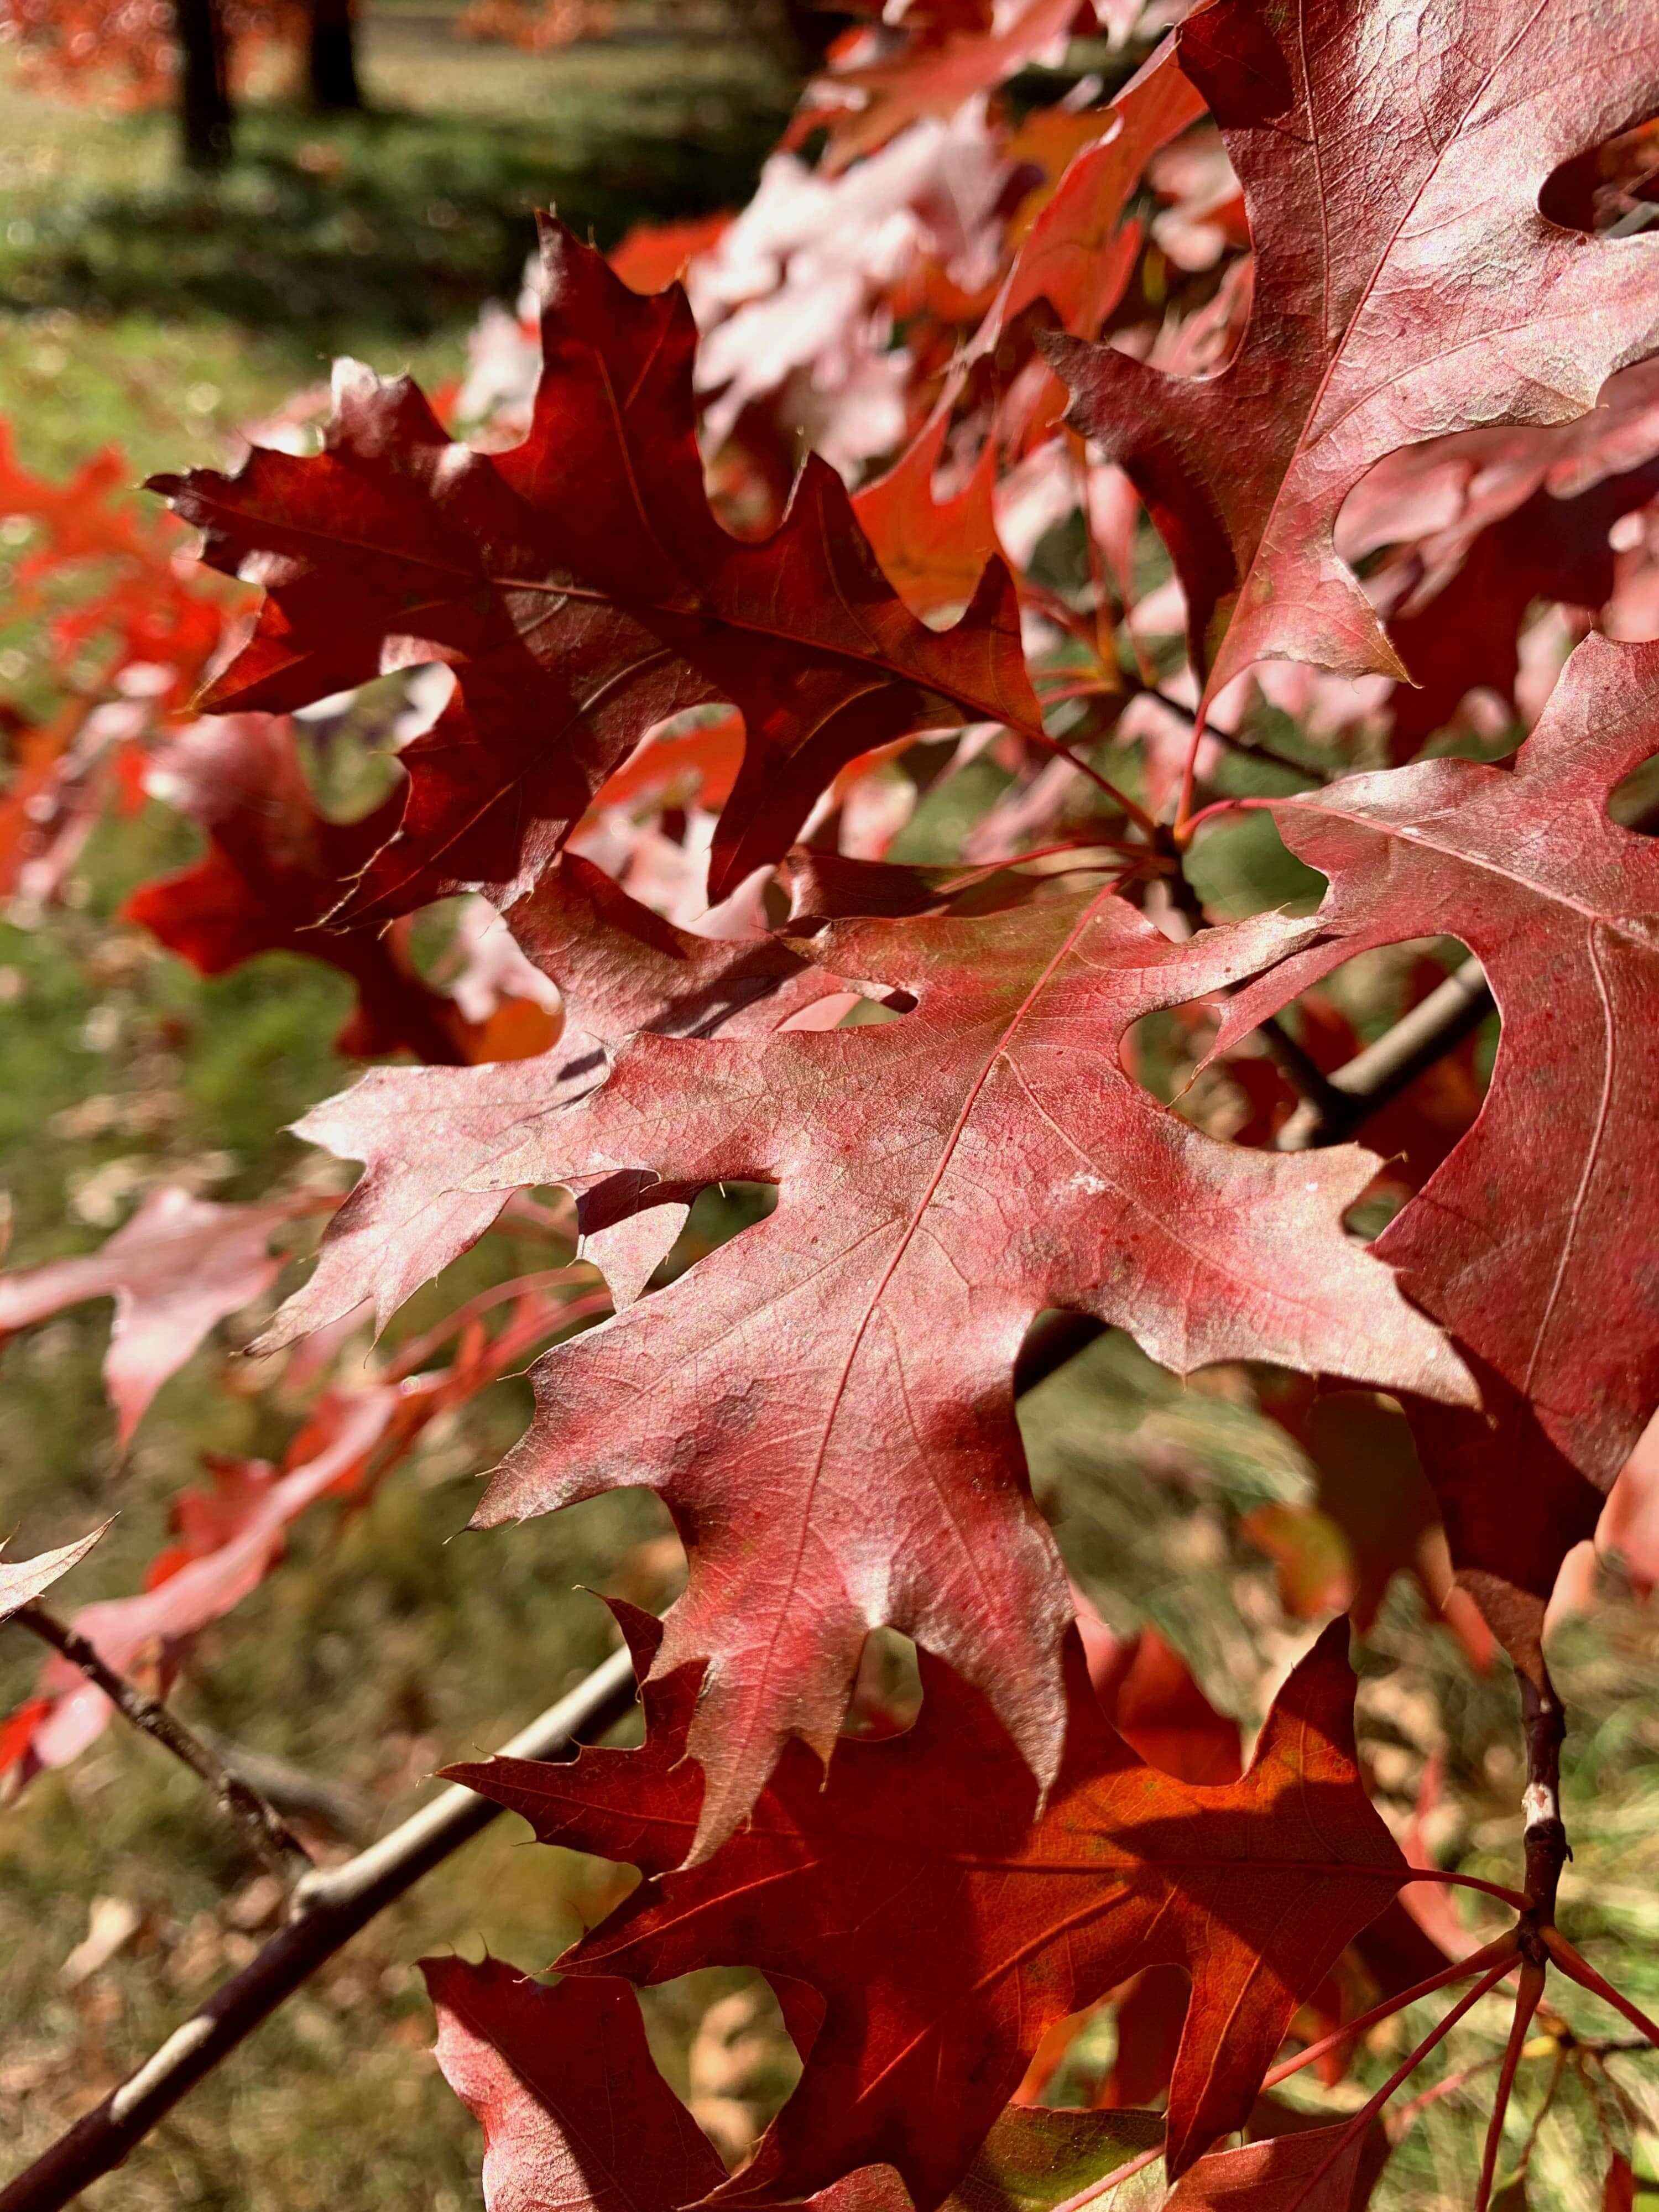 close up photo of reddish-brown autumn leaves on a tree